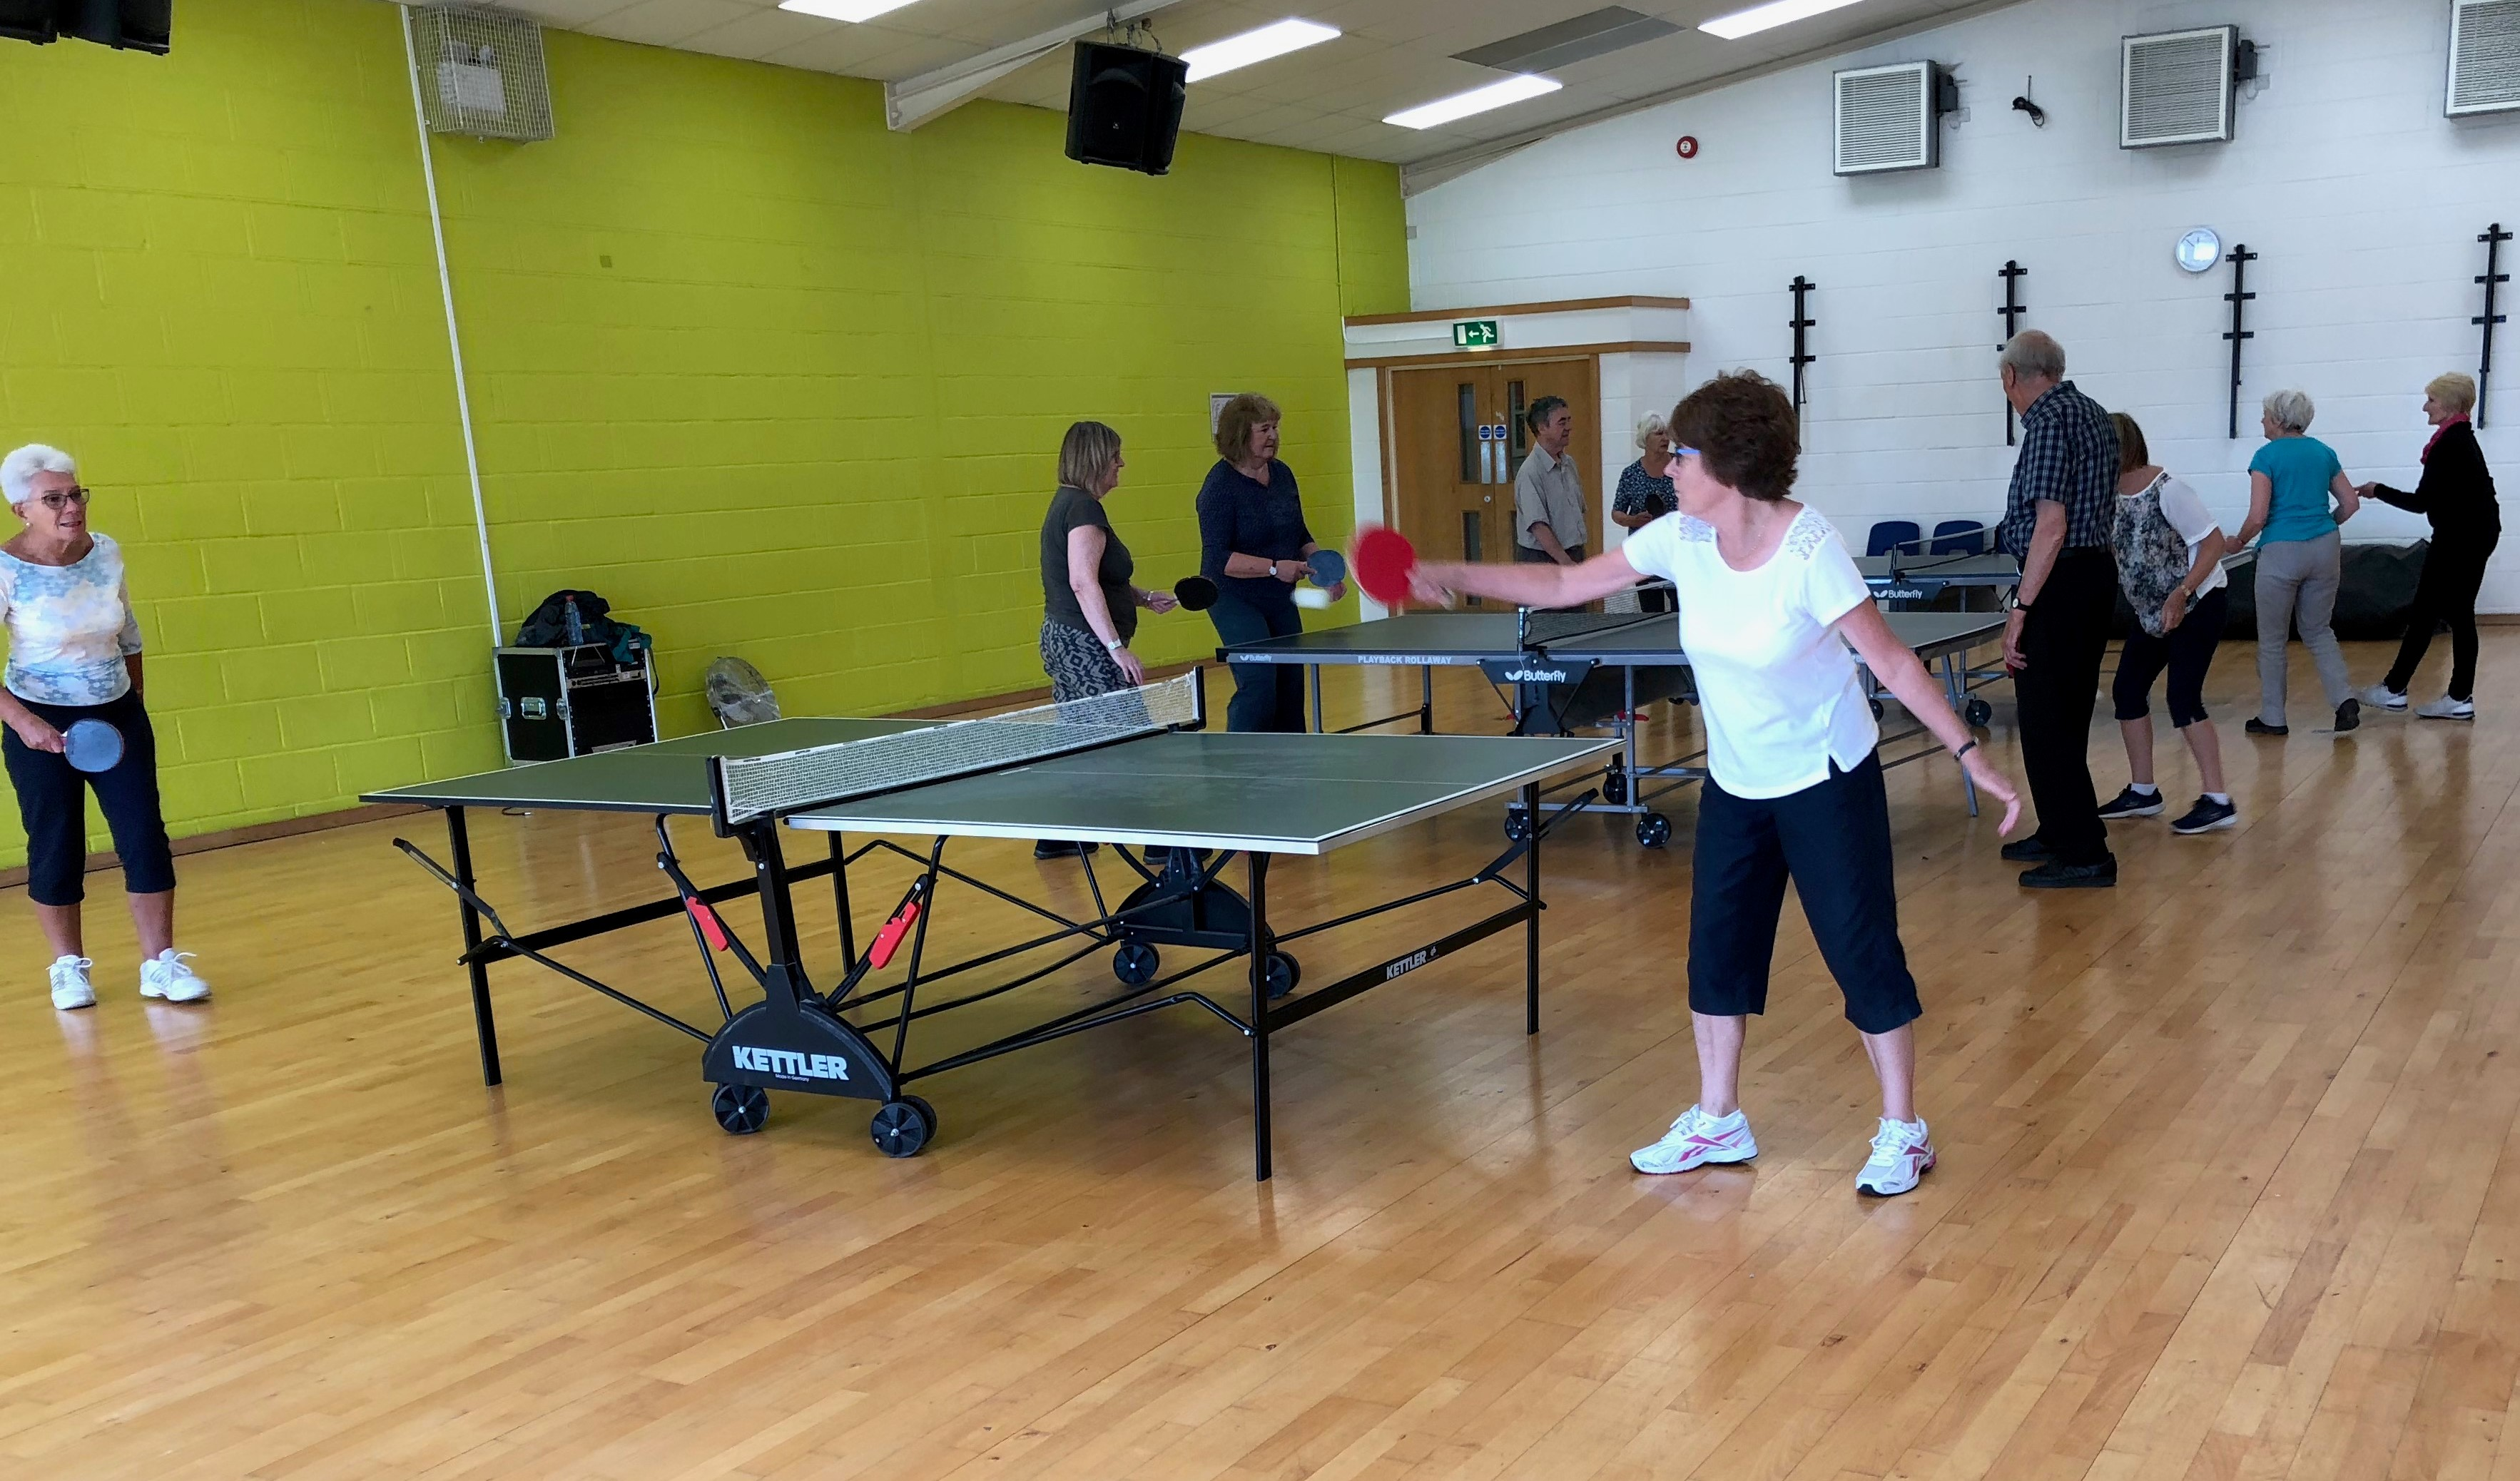 Table tennis at an indoor venue